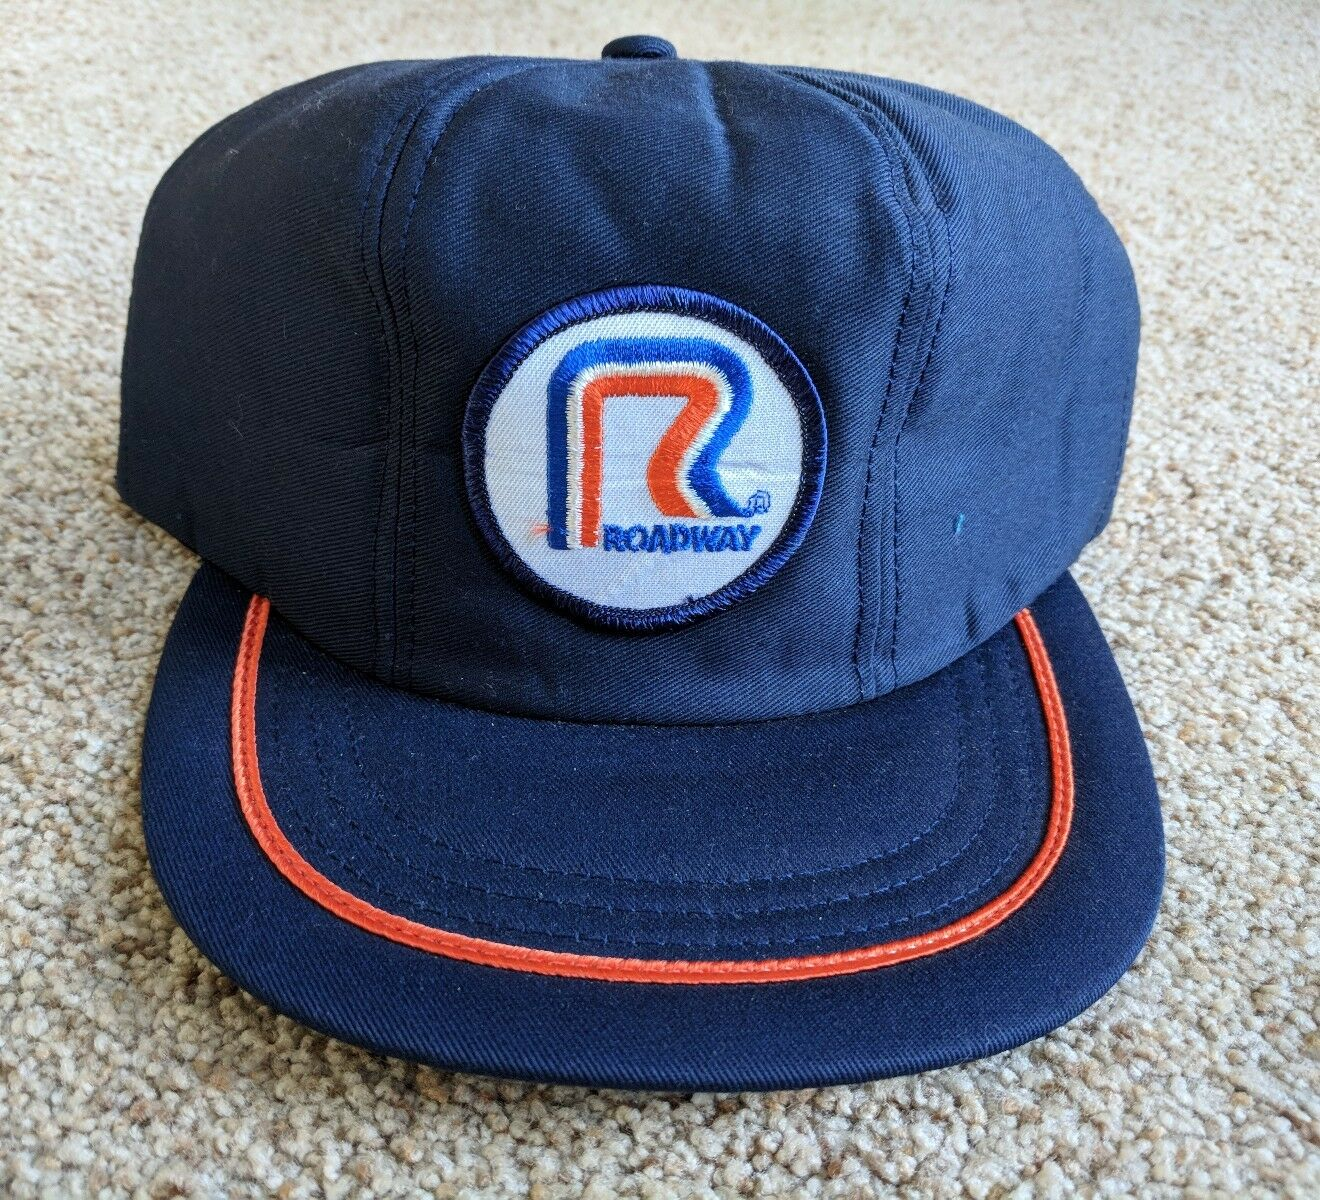 Roadway Trucker Hat Blue Orange Embroidered Adjustable Patch Snapback Adjustable Embroidered Made in US abcea6